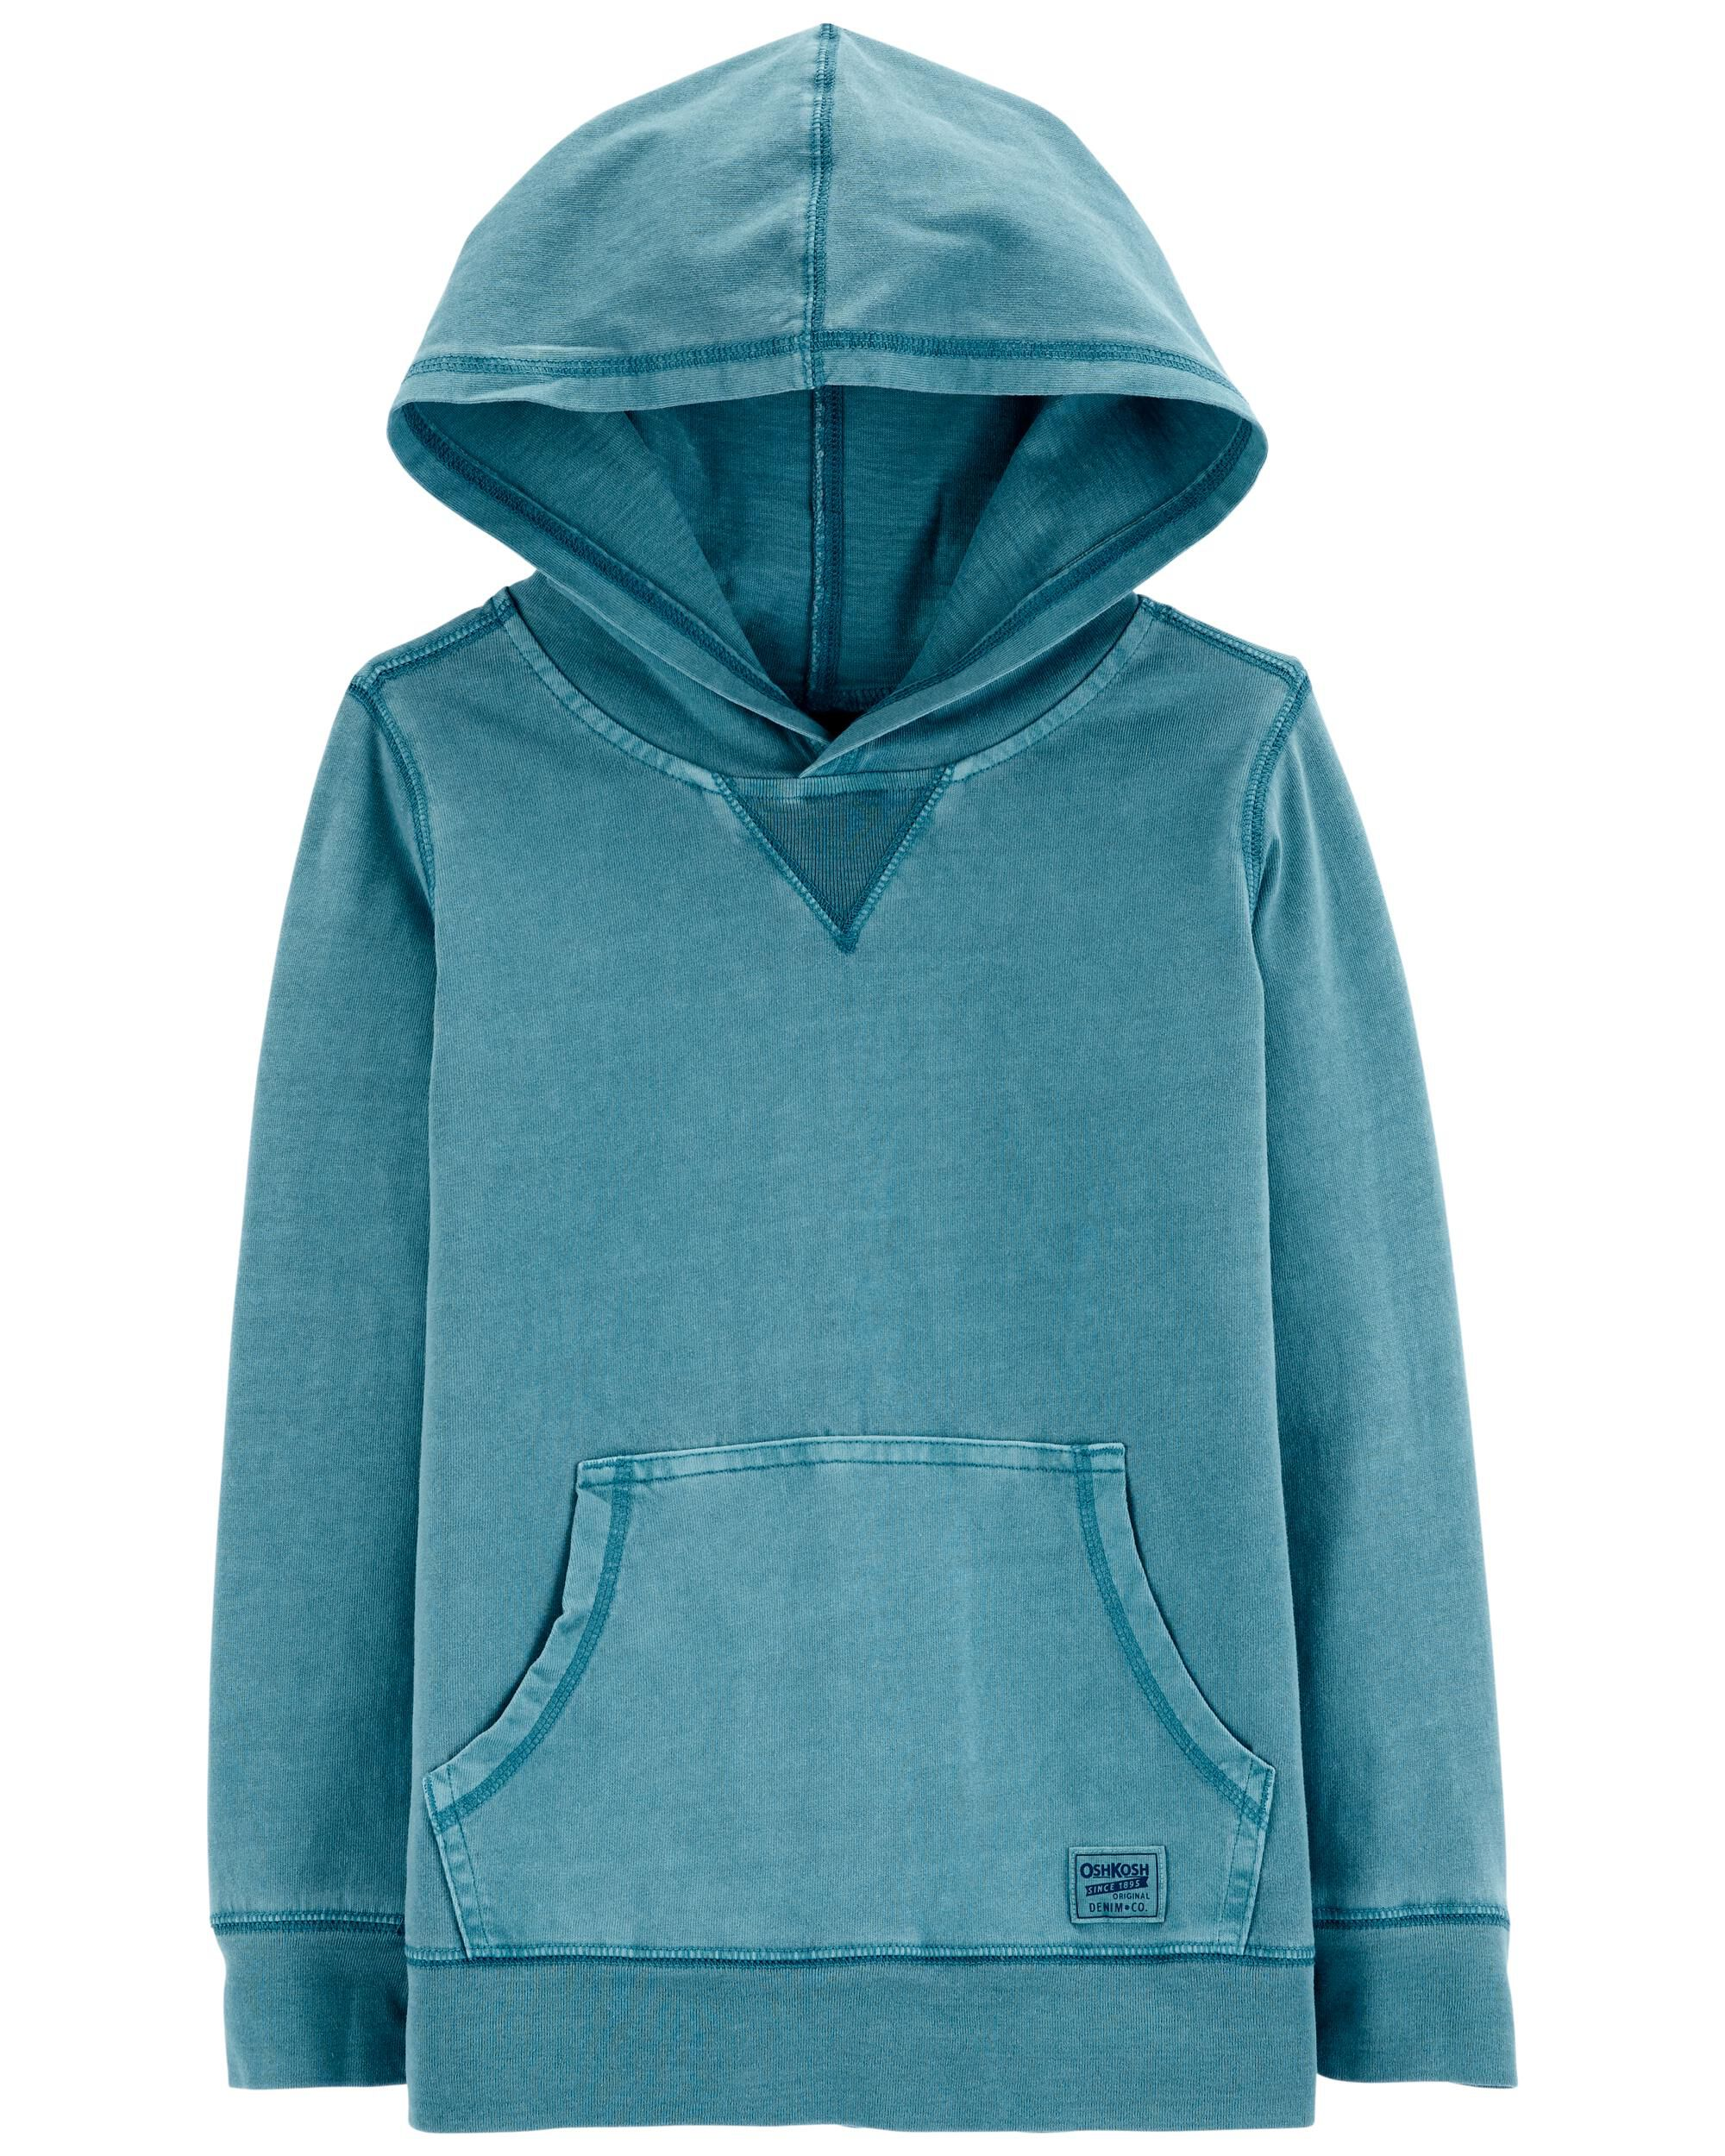 Carters Garment-Dyed Jersey Hoodie